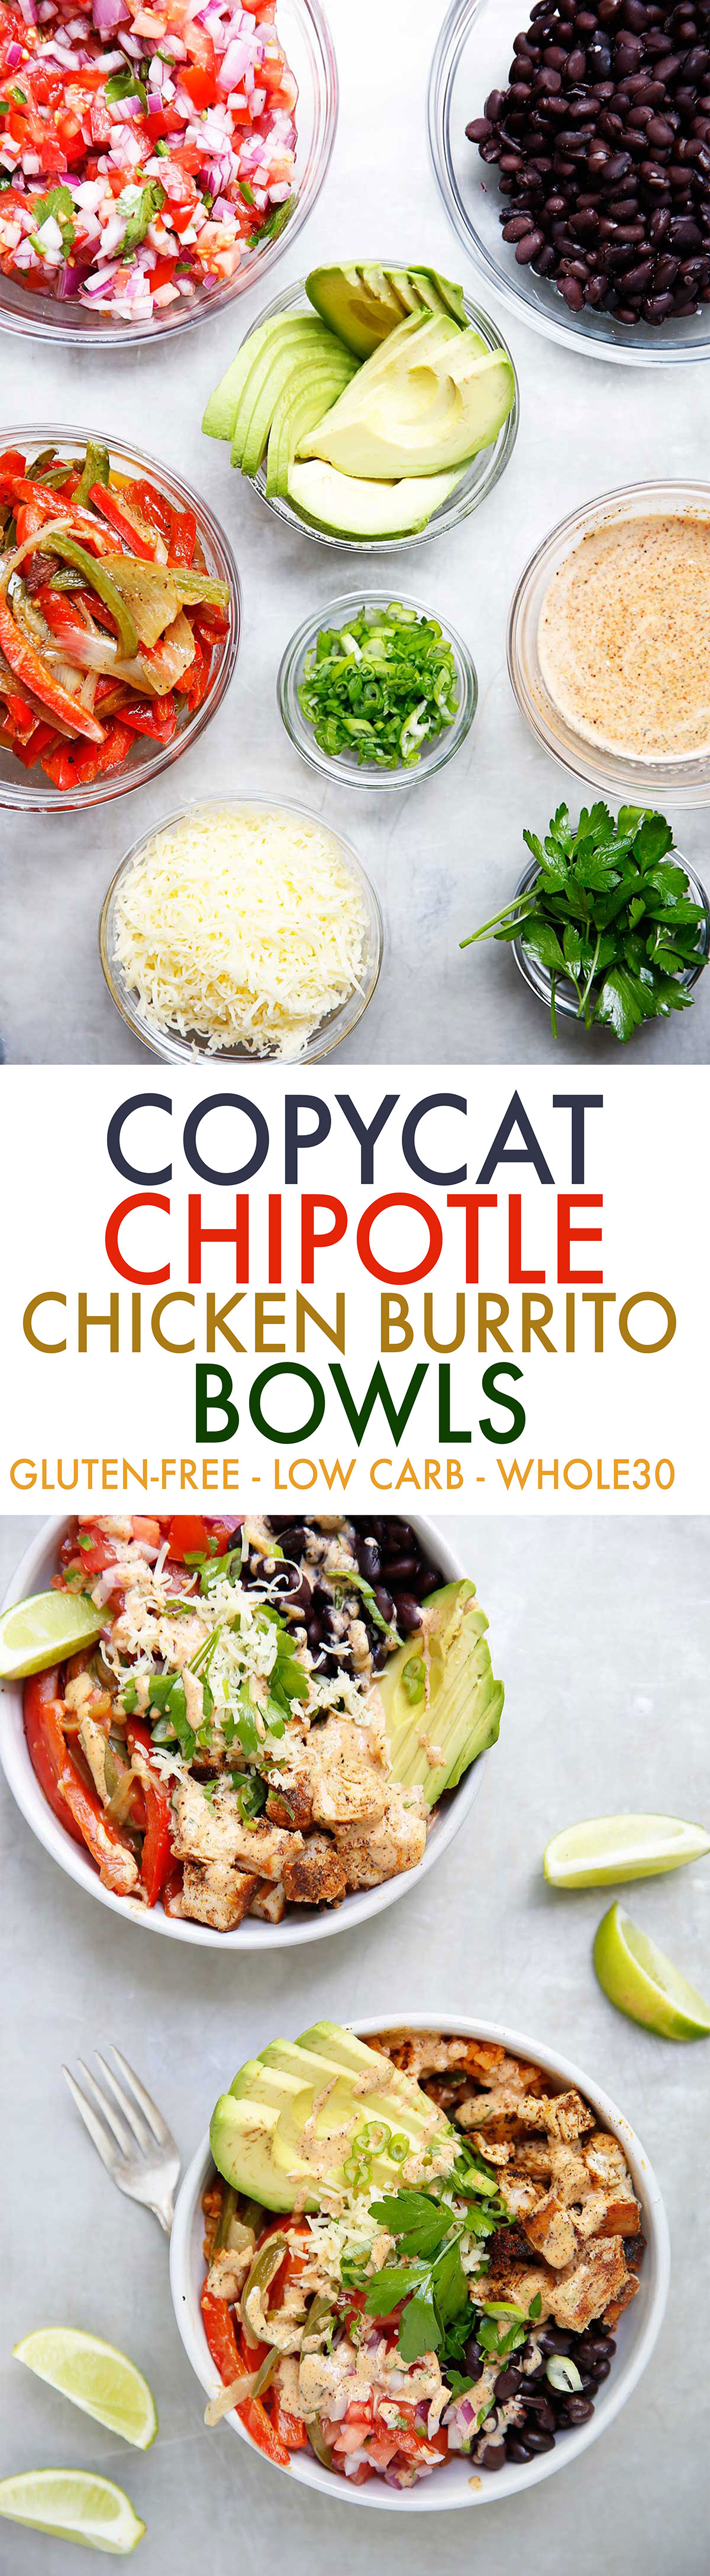 Chicken Burrito Bowl {Low-carb, grain-free, dairy-free}| Lexi's Clean Kitchen